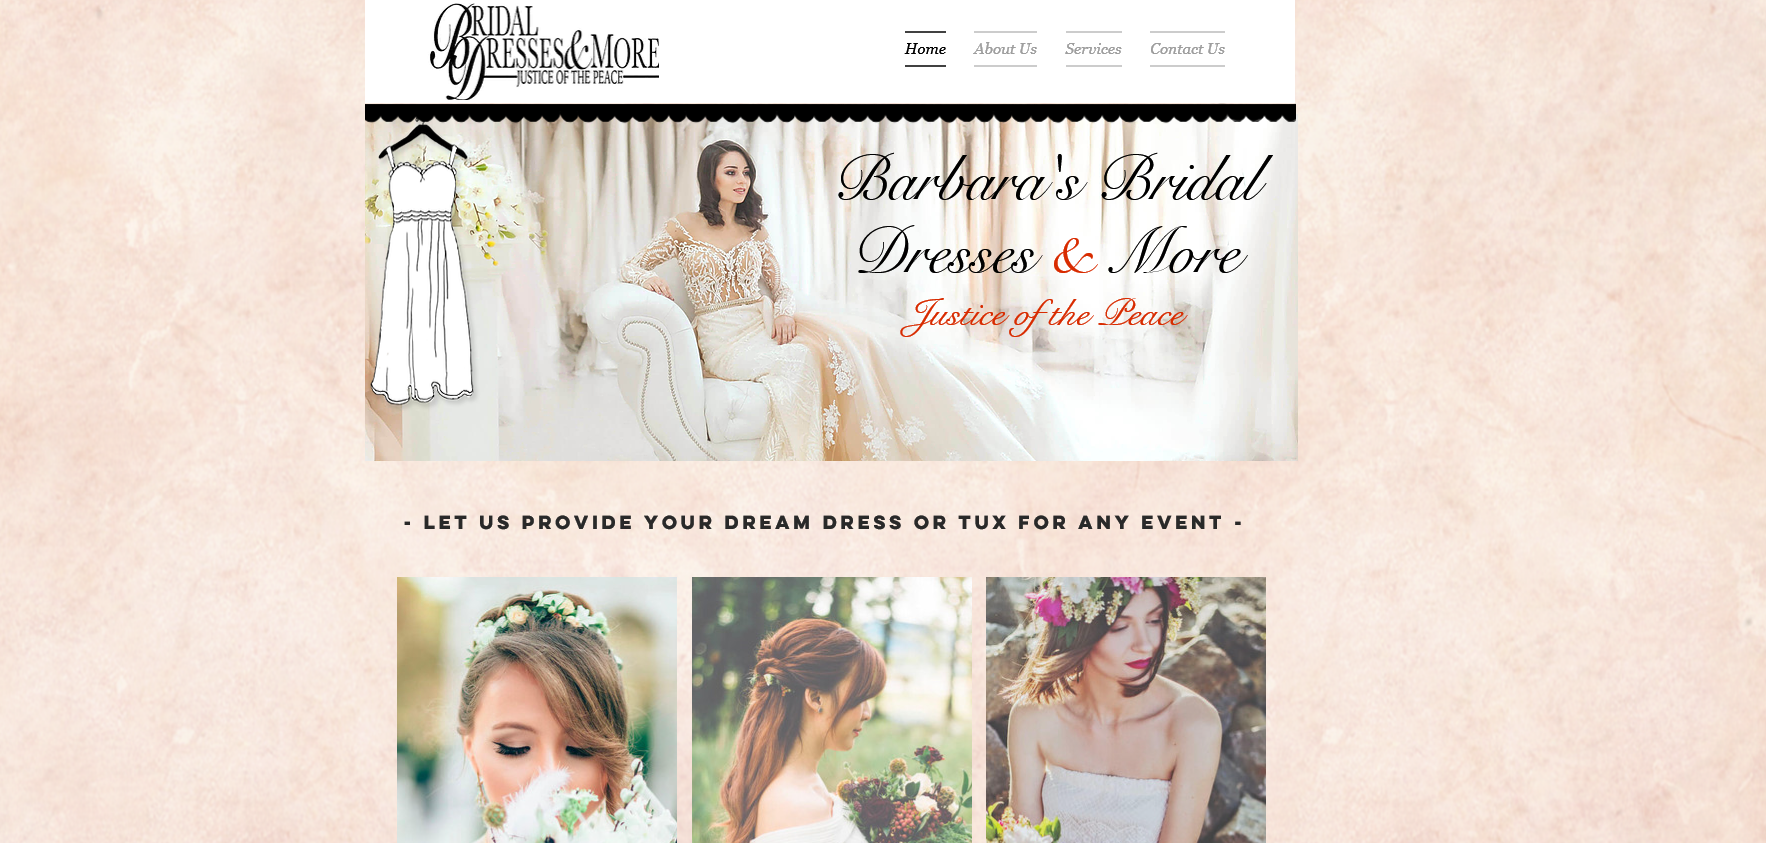 Barbara's Bridal Dresses & More